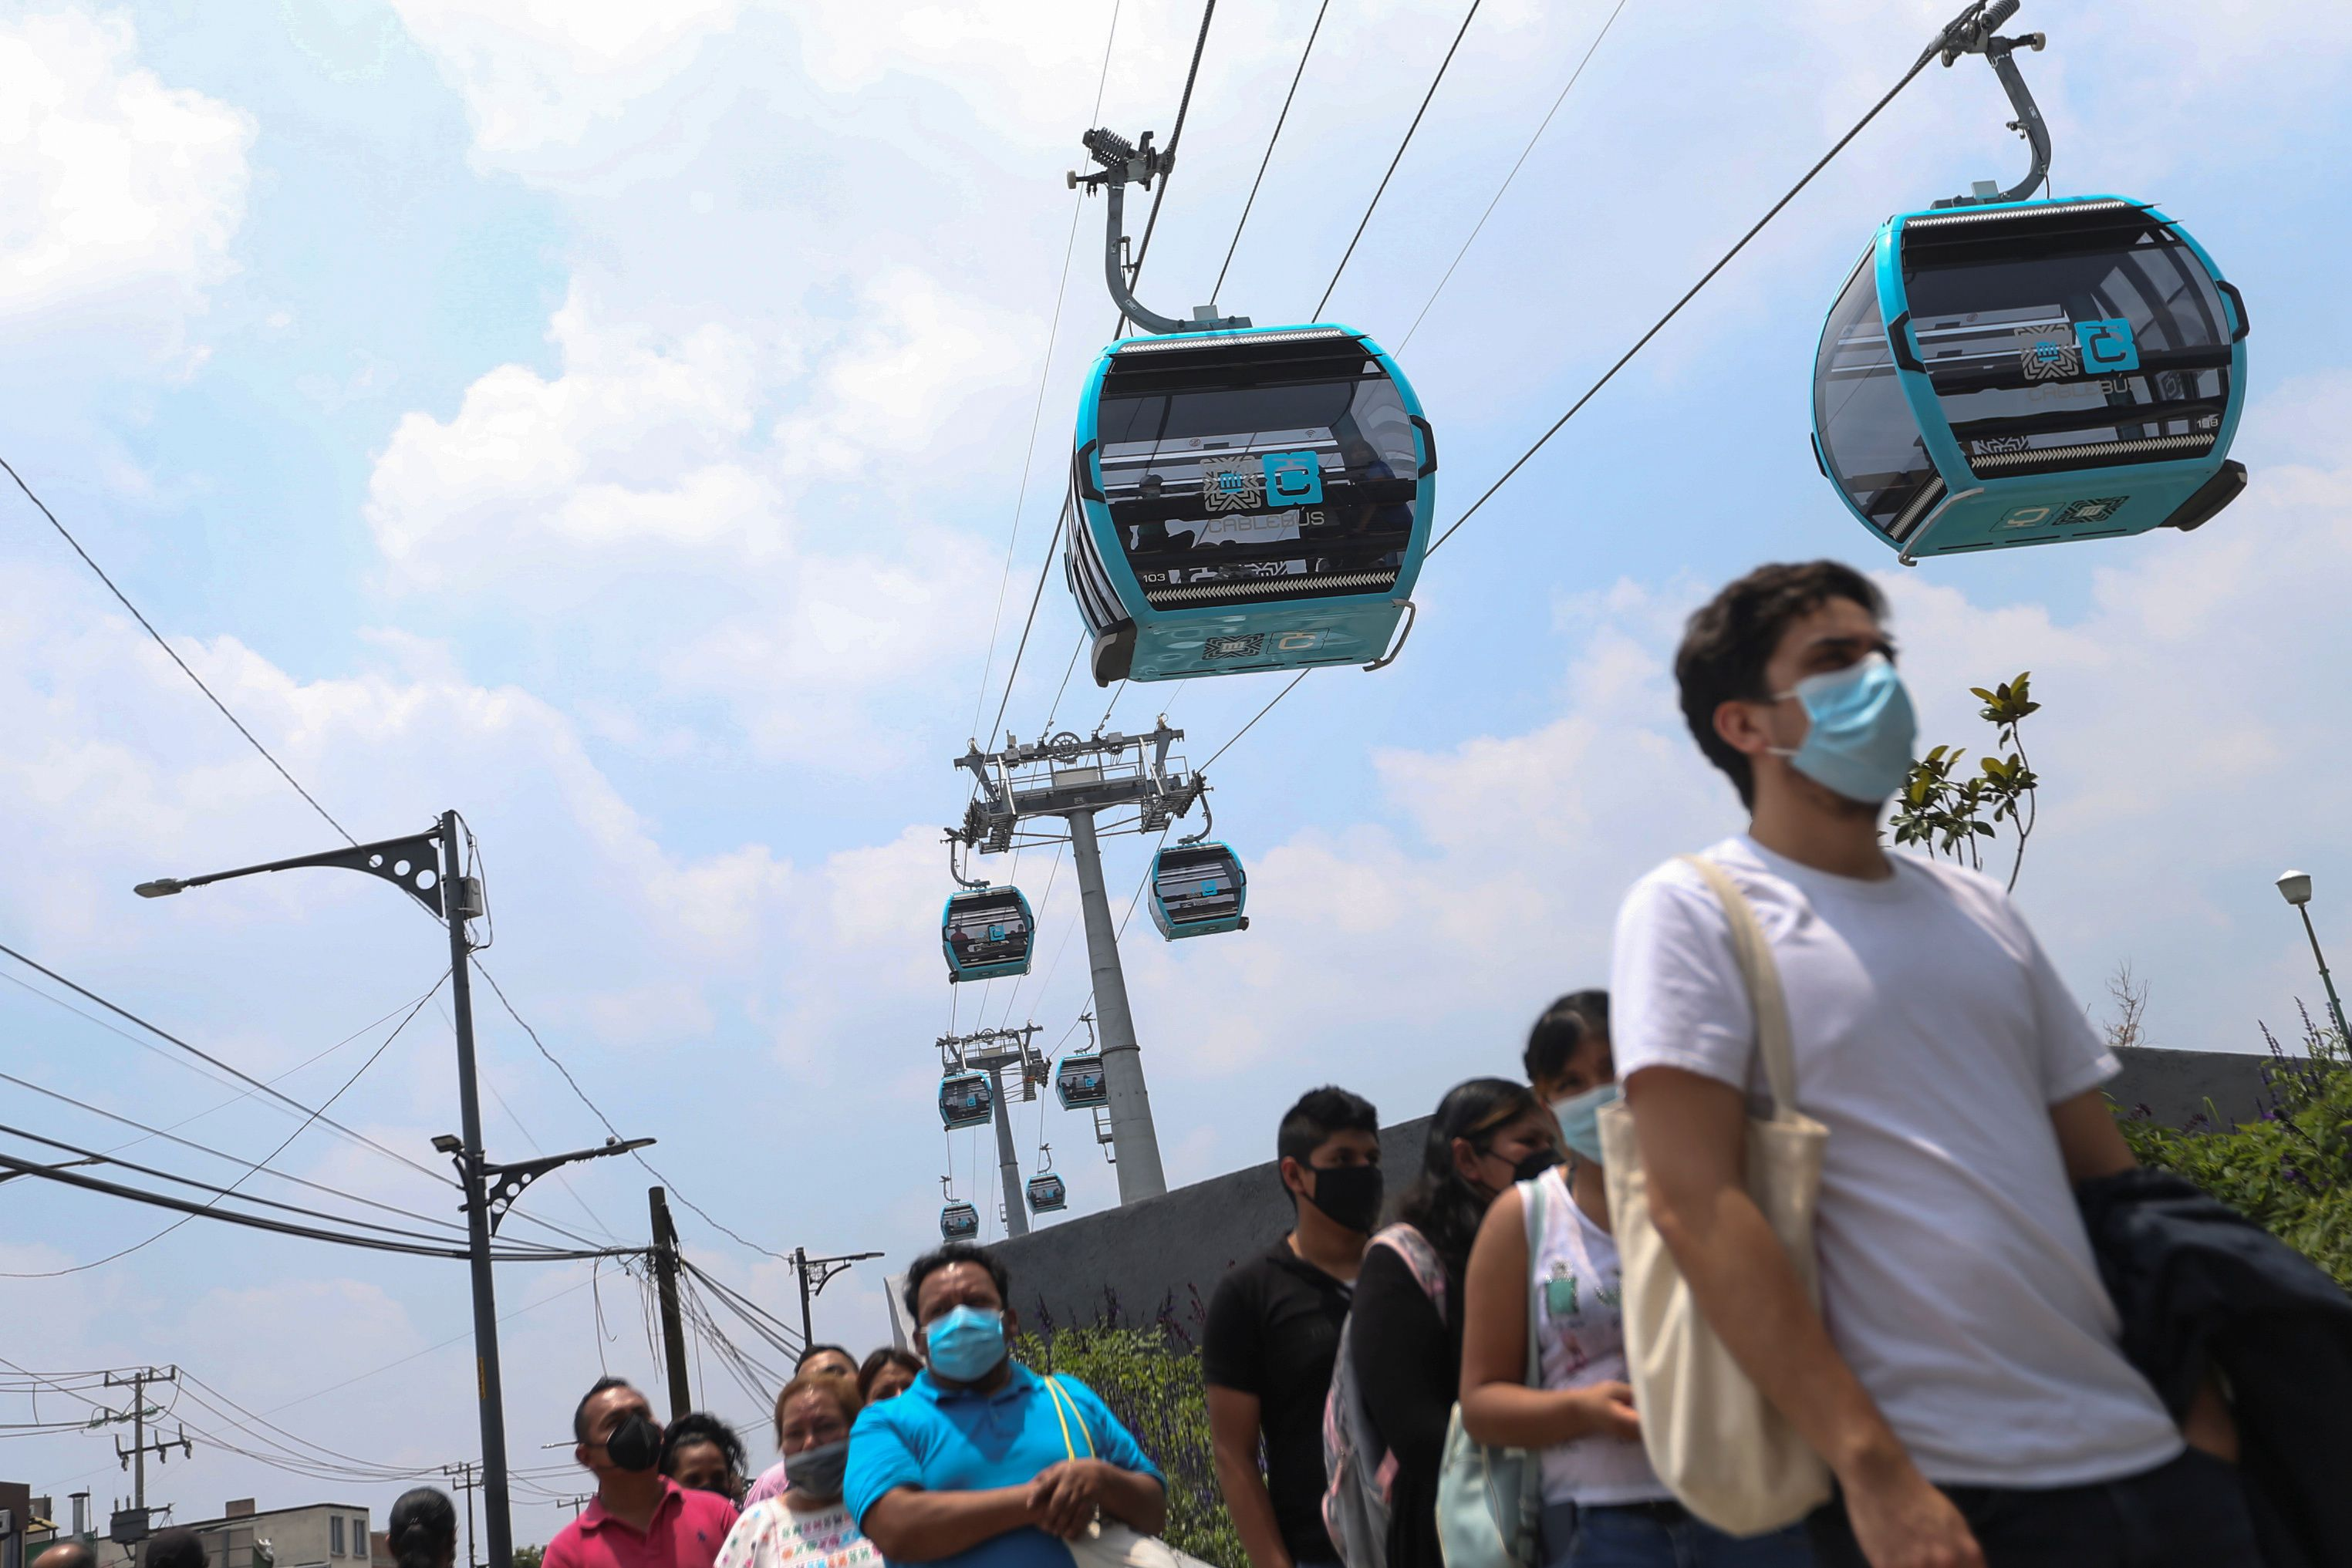 Passengers line up before traveling on a cable car system dubbed the Cablebus during the inauguration of a section in Mexico City, Mexico, July 11, 2021. REUTERS/Edgard Garrido